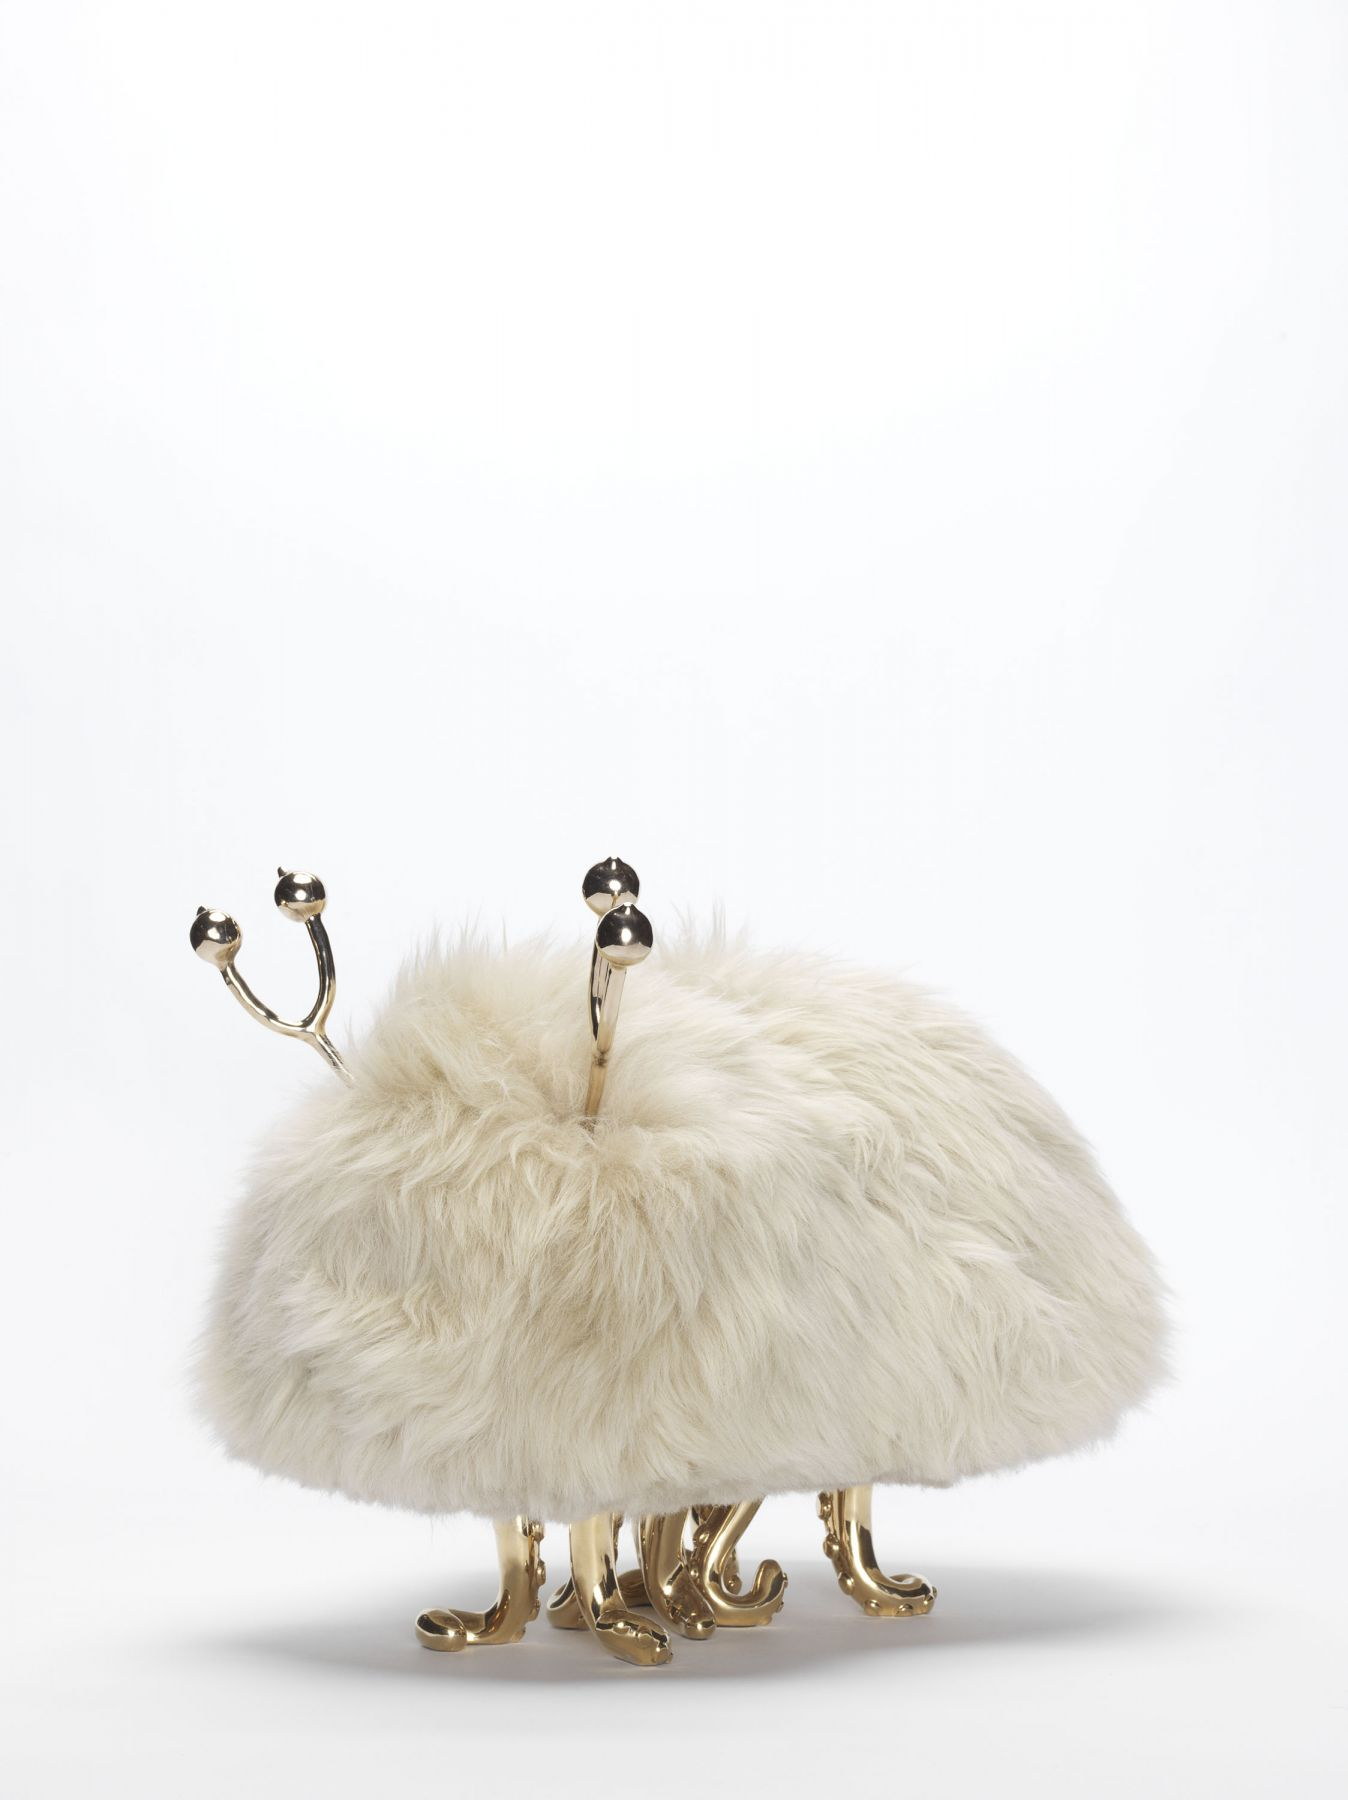 Sculpture made of stone sheepskin with brass squid legs and horns by the artists the haas brothers